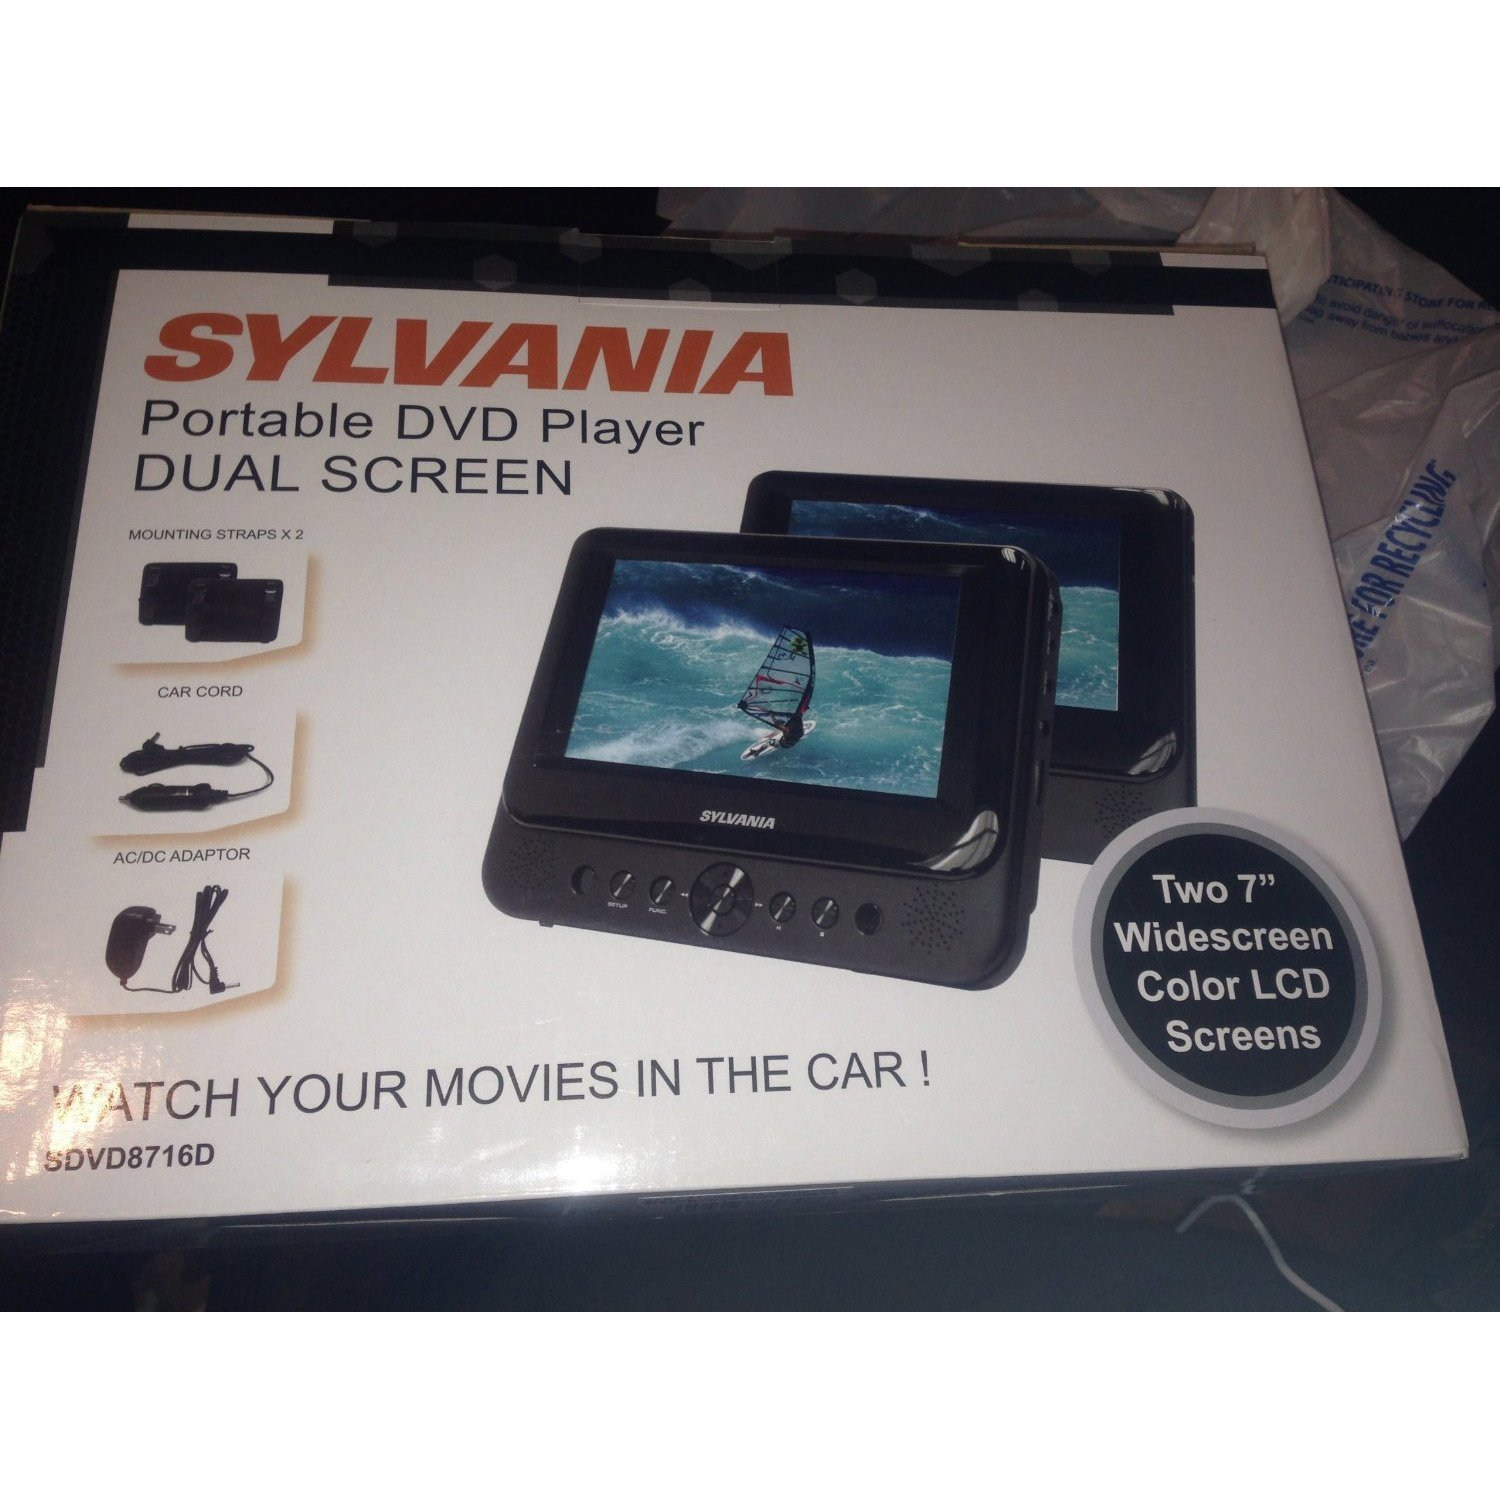 SYLVANIA 7'' DUAL SCREEN PORTABLE DVD (Certified Refurbished) by Sylvania (Image #1)